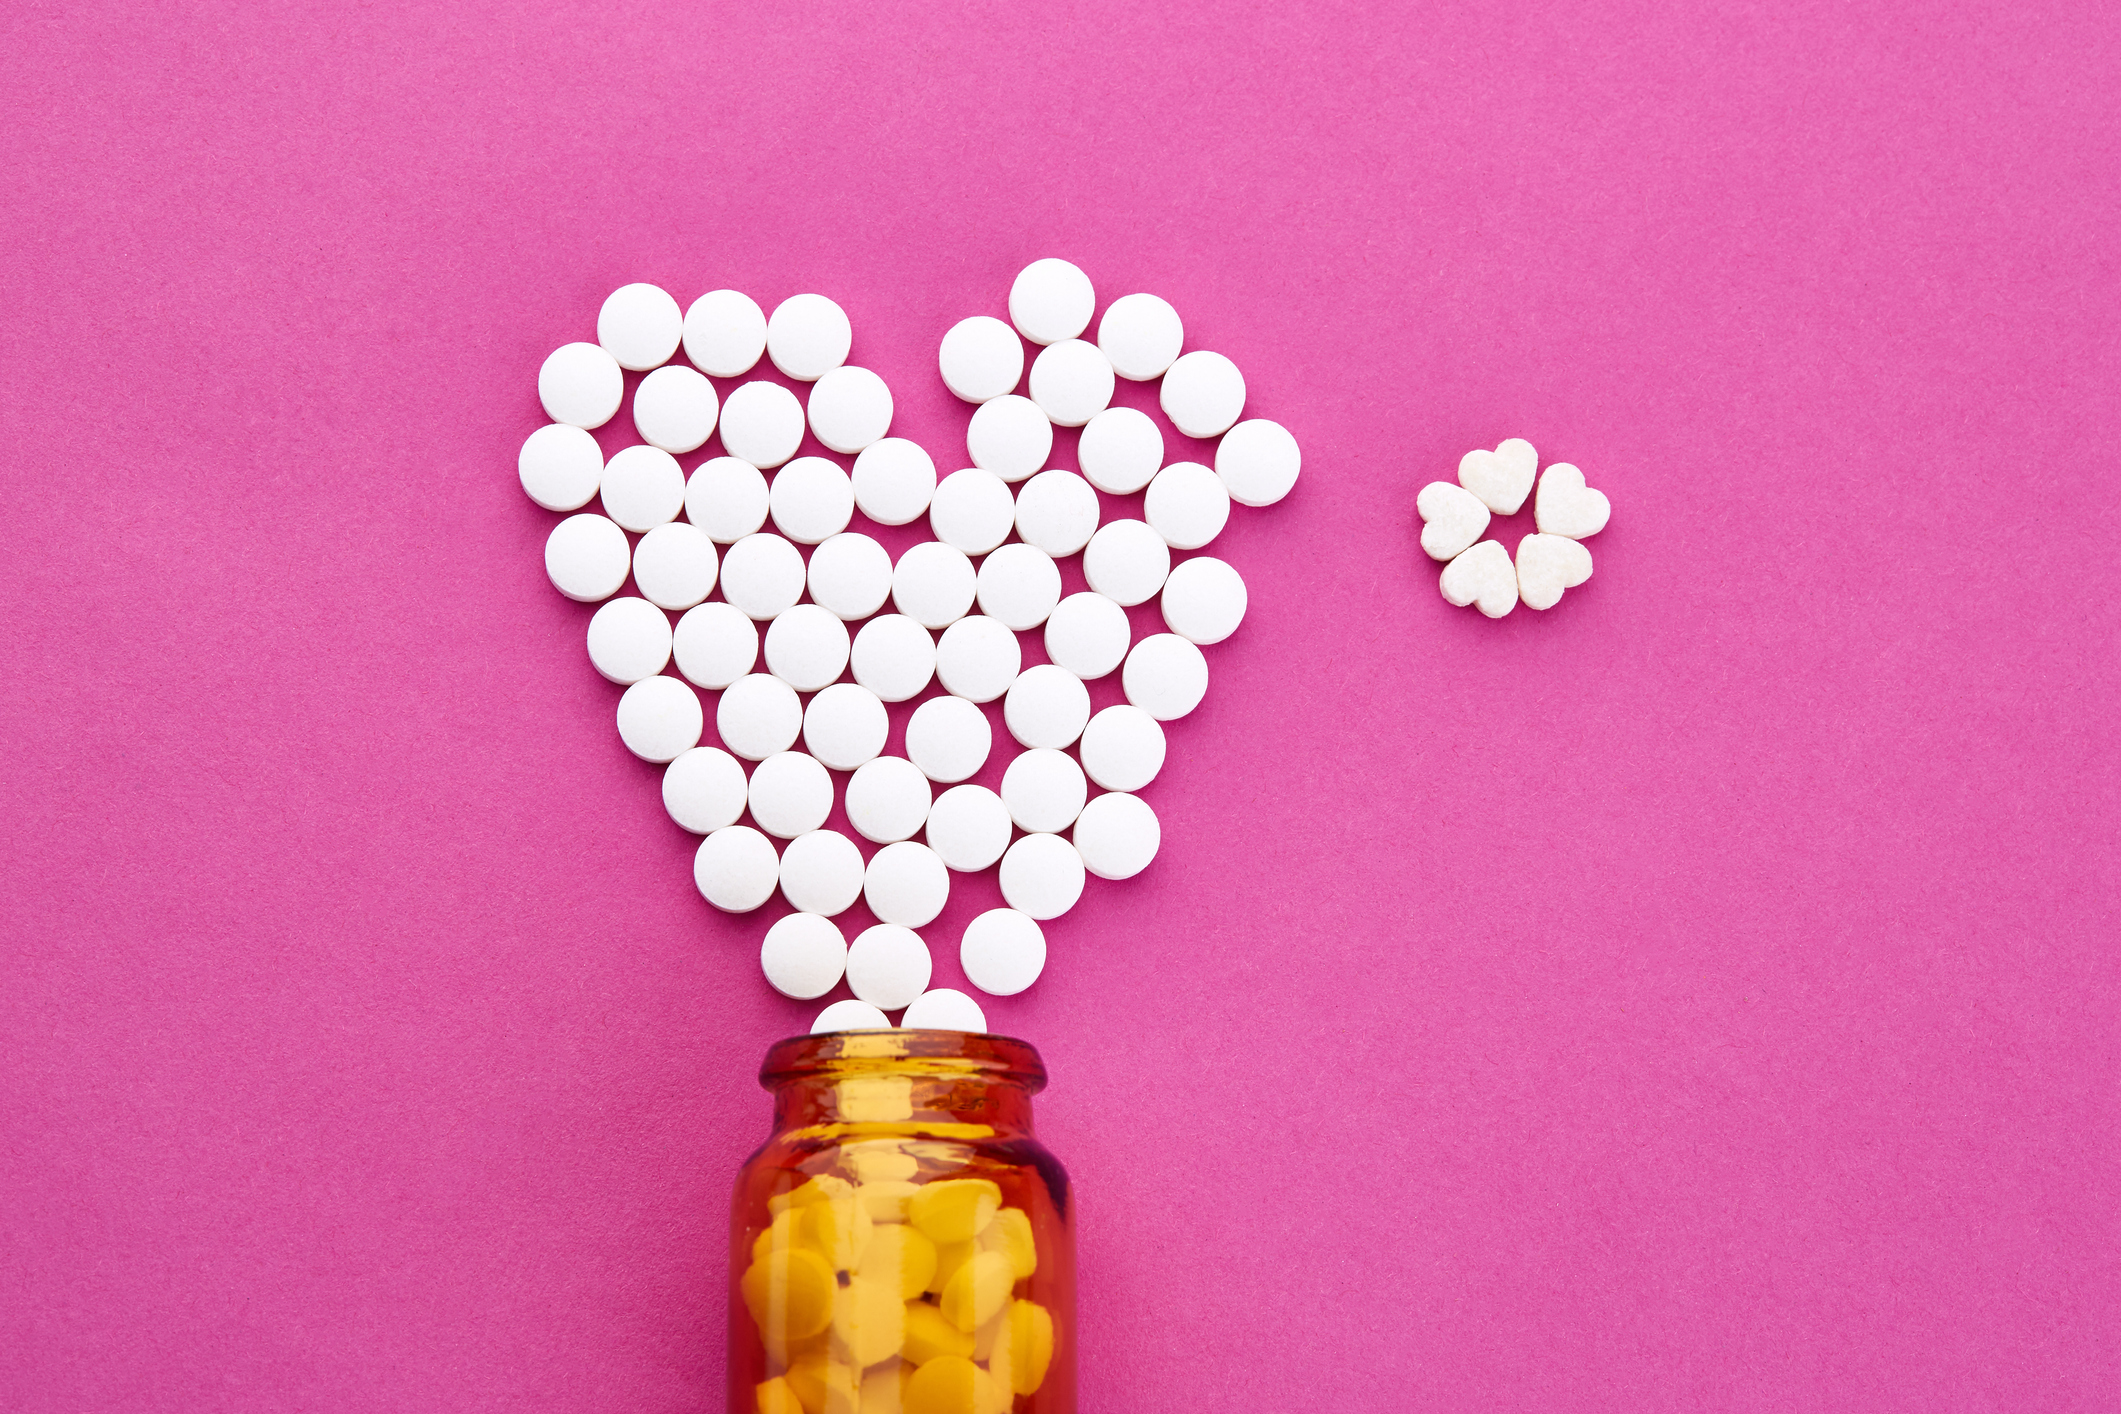 Higher vitamin K intake lowers risks to heart and blood vessels